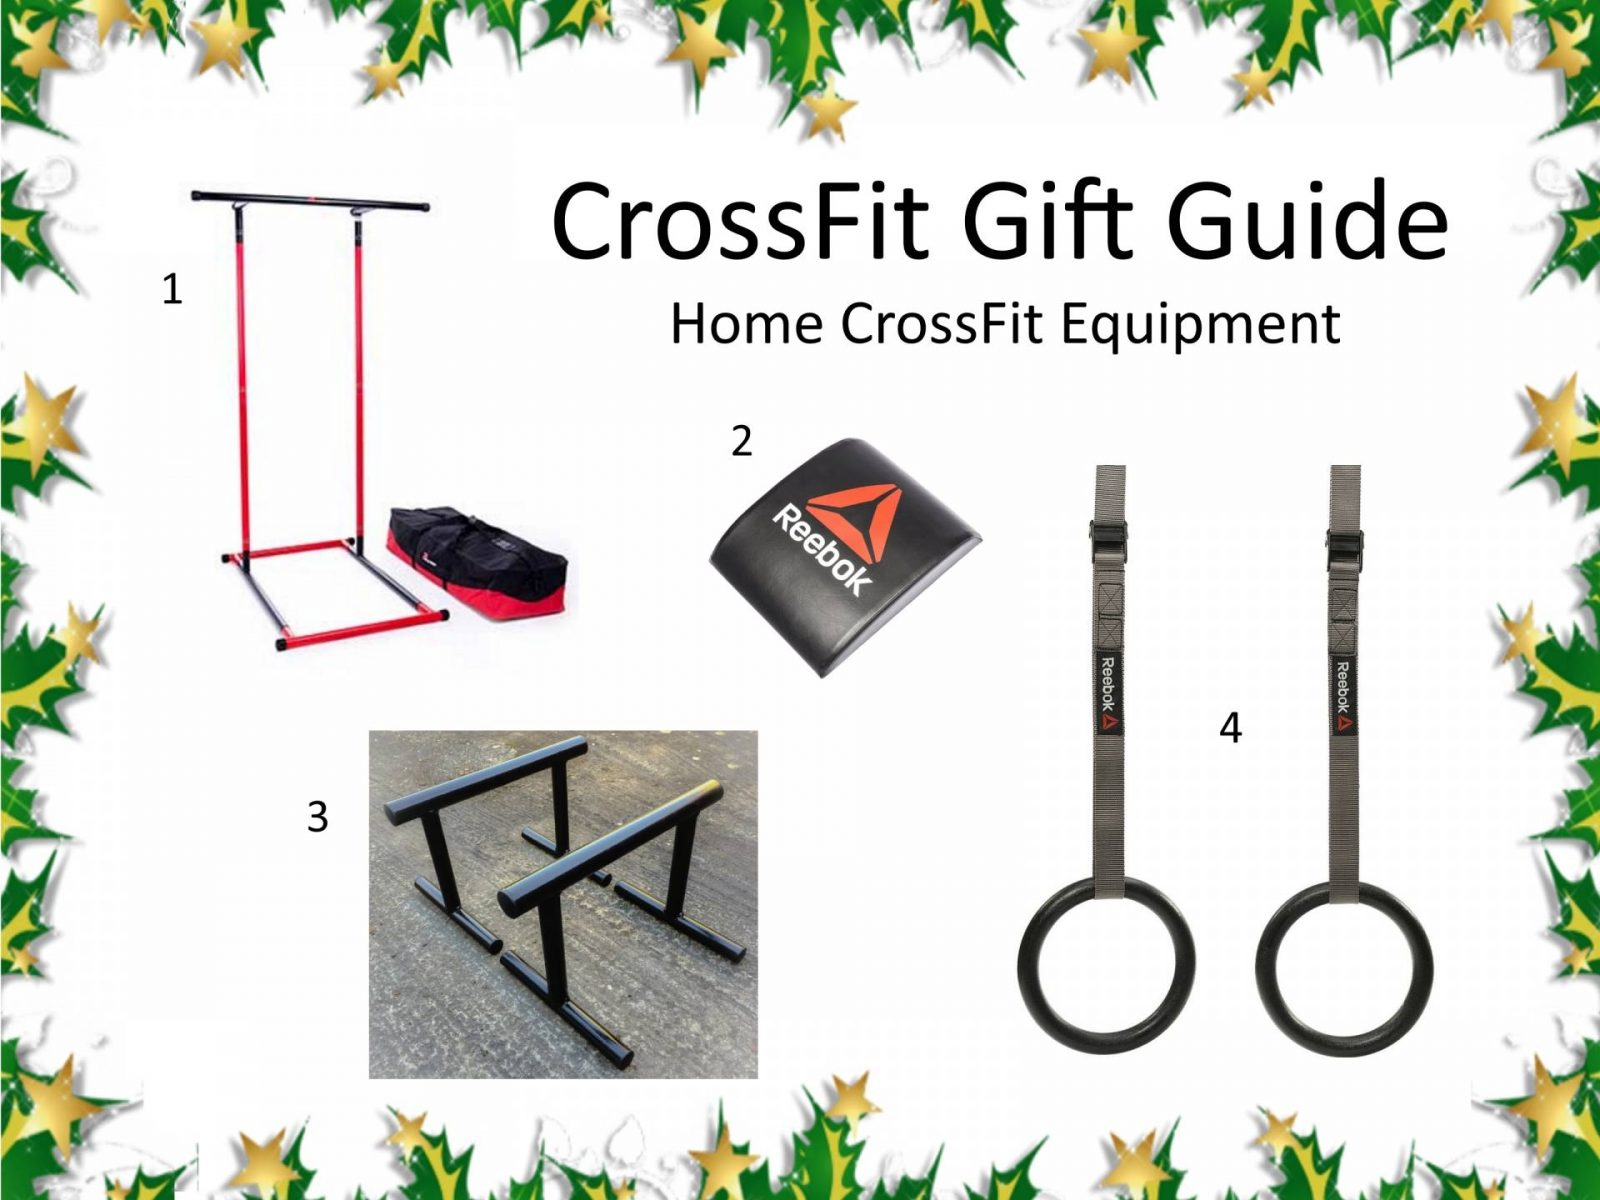 crossfit-gift-guide-accessories-home-crossfit-equipment